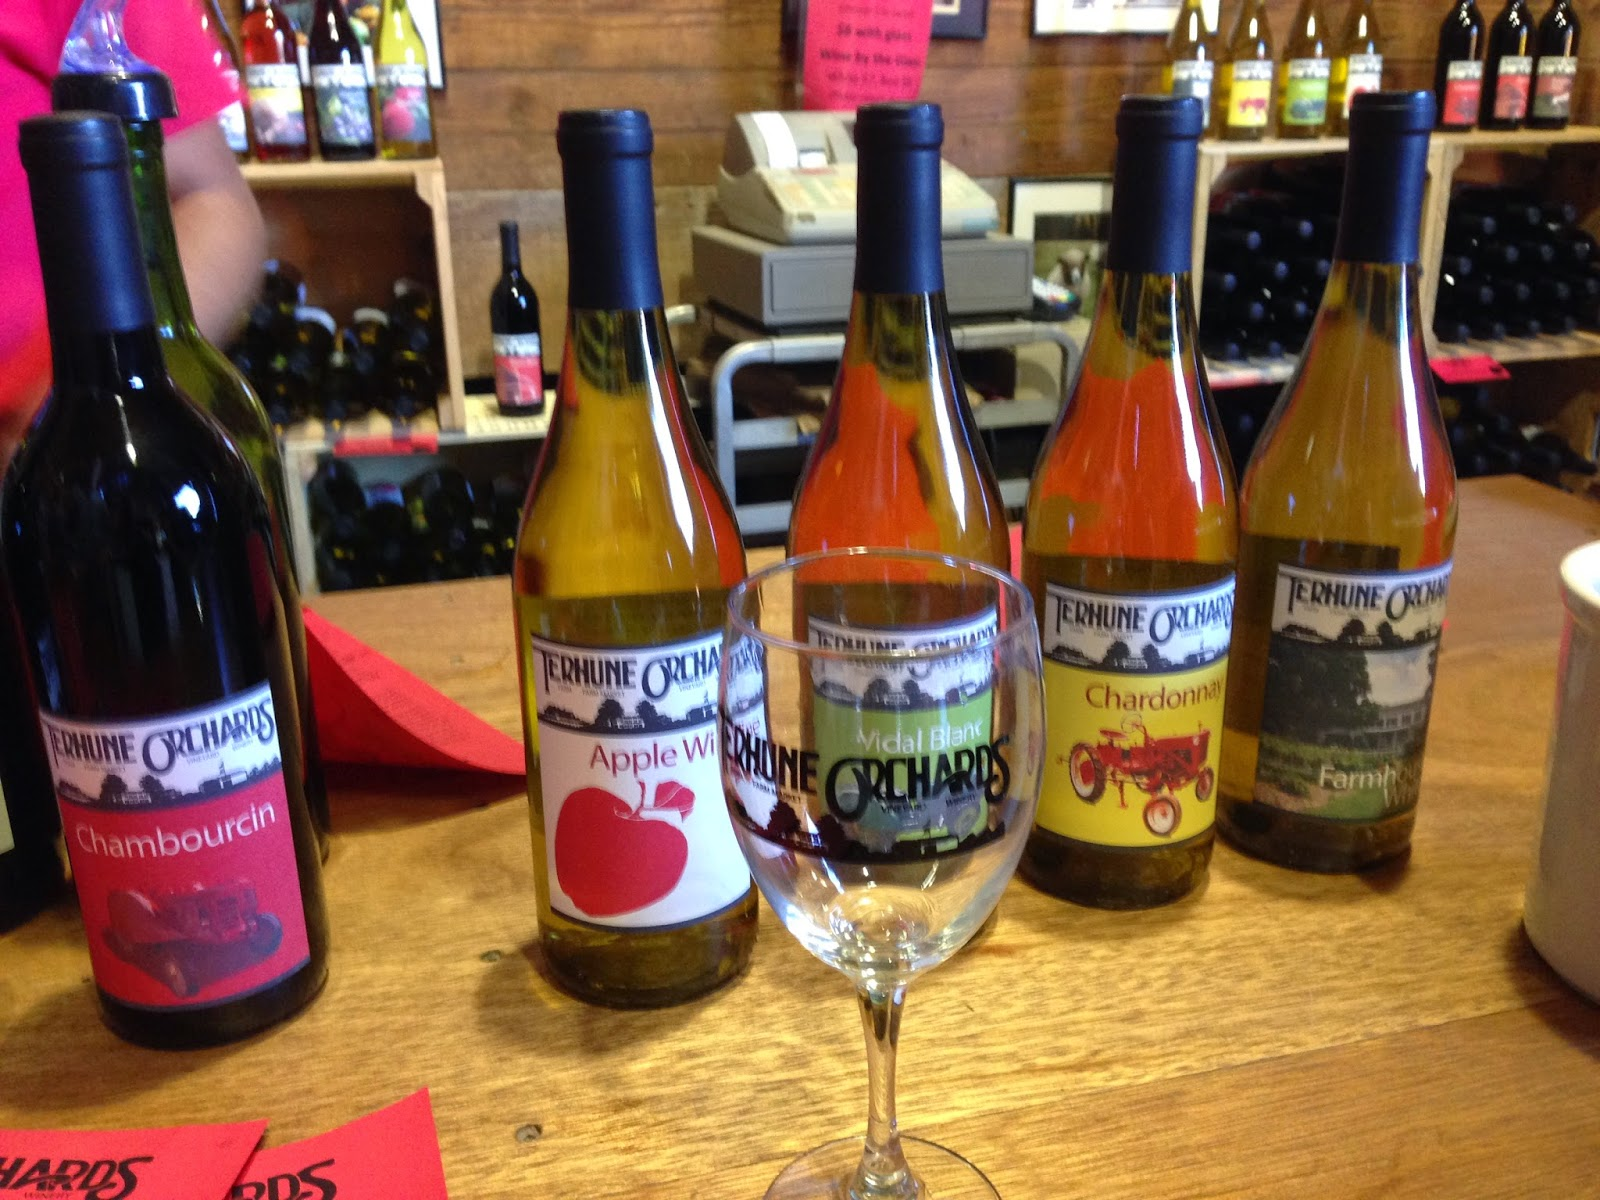 New Jersey Wine Trail - Terhune Orchards winery